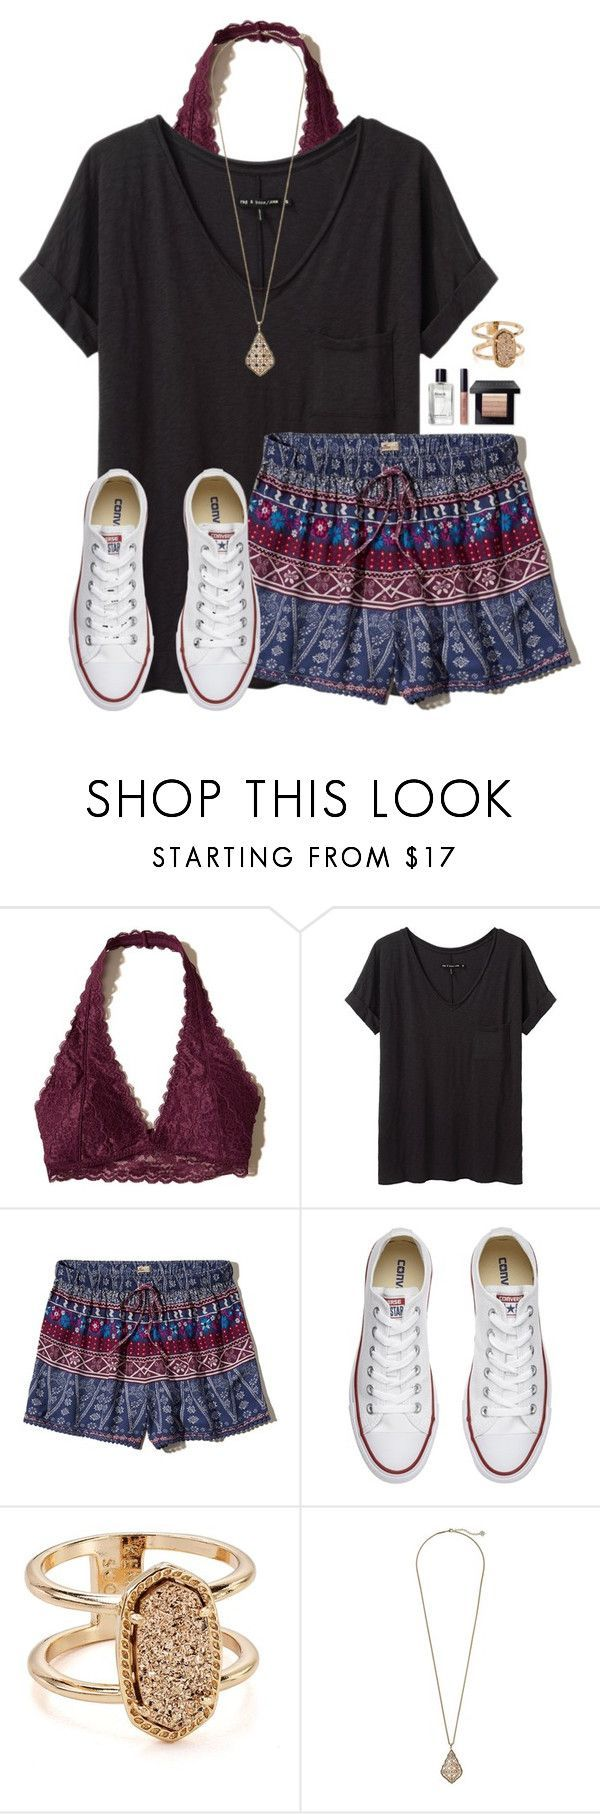 """I love sleeping in late"" by victoriaann34 on Polyvore featuring Hollister Co., rag & bone/JEAN, Converse, Kendra Scott and Bobbi Brown Cosmetics"